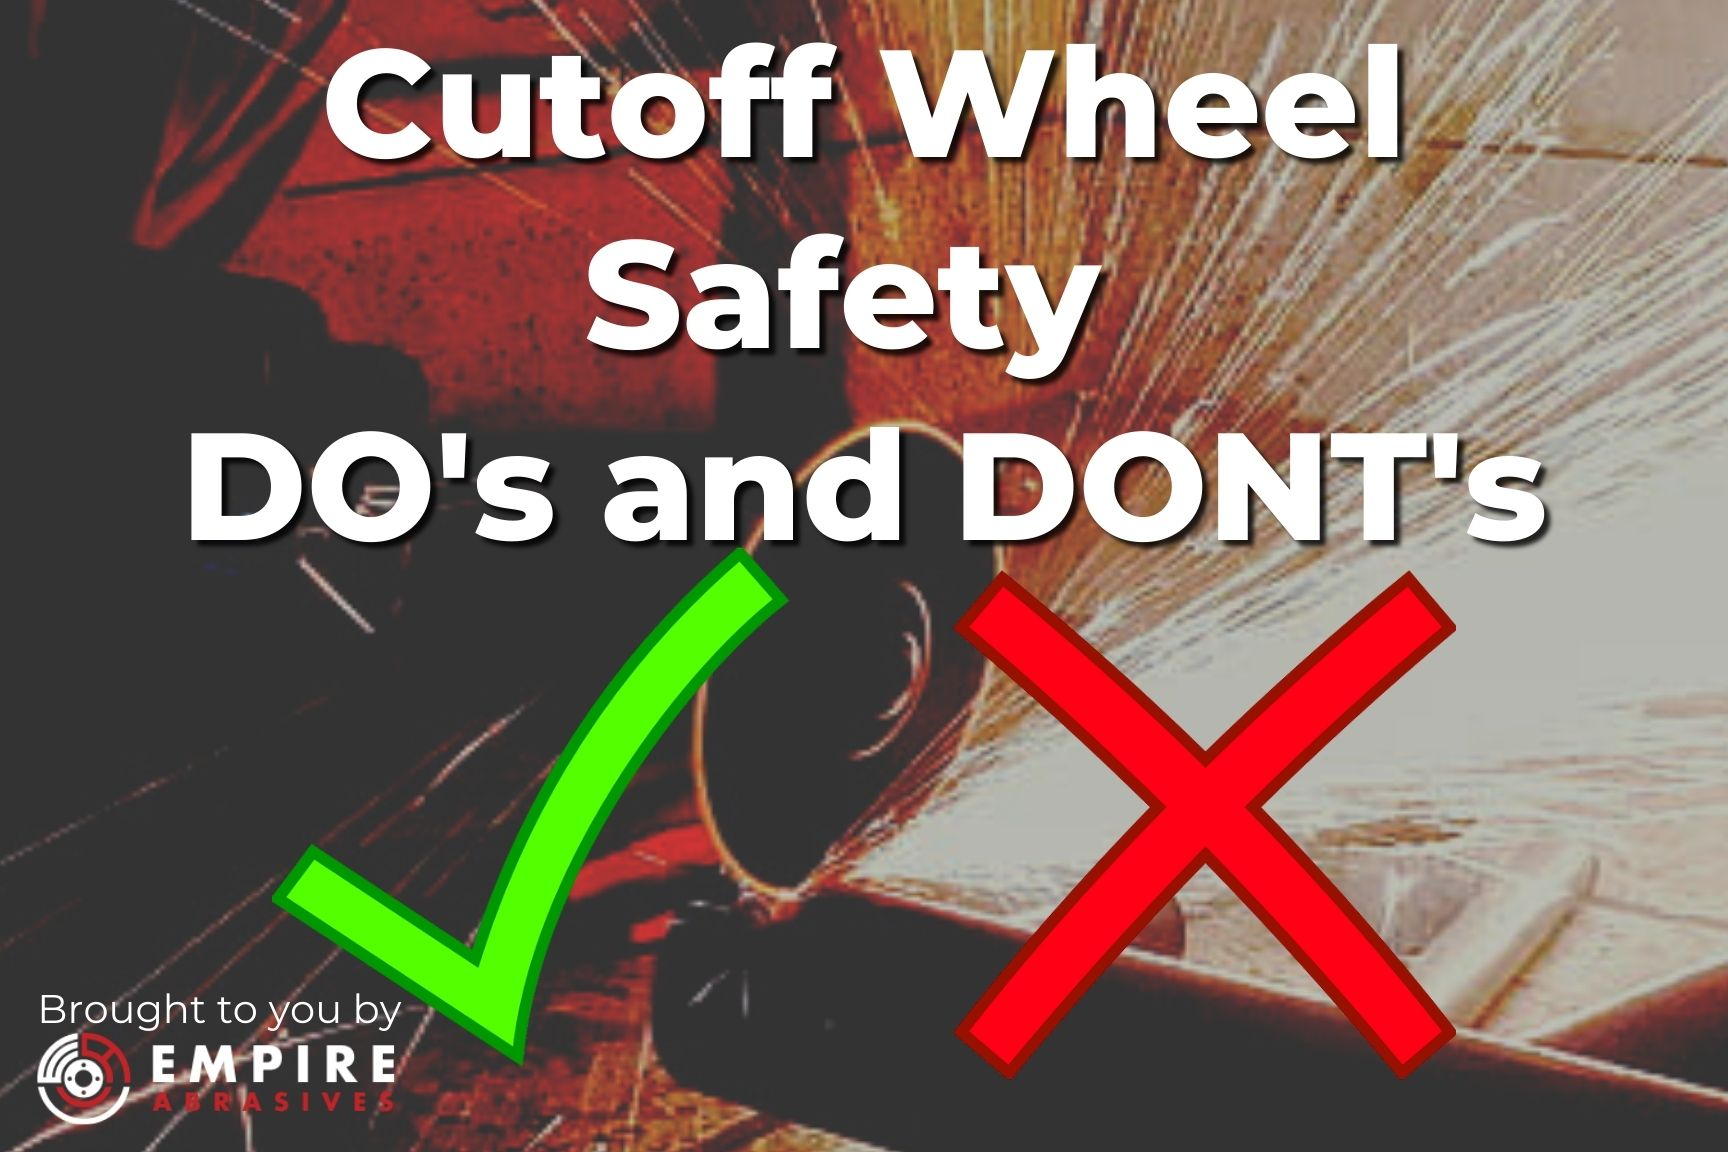 cutoff-wheel-safety-do-s-and-dont-s.jpg